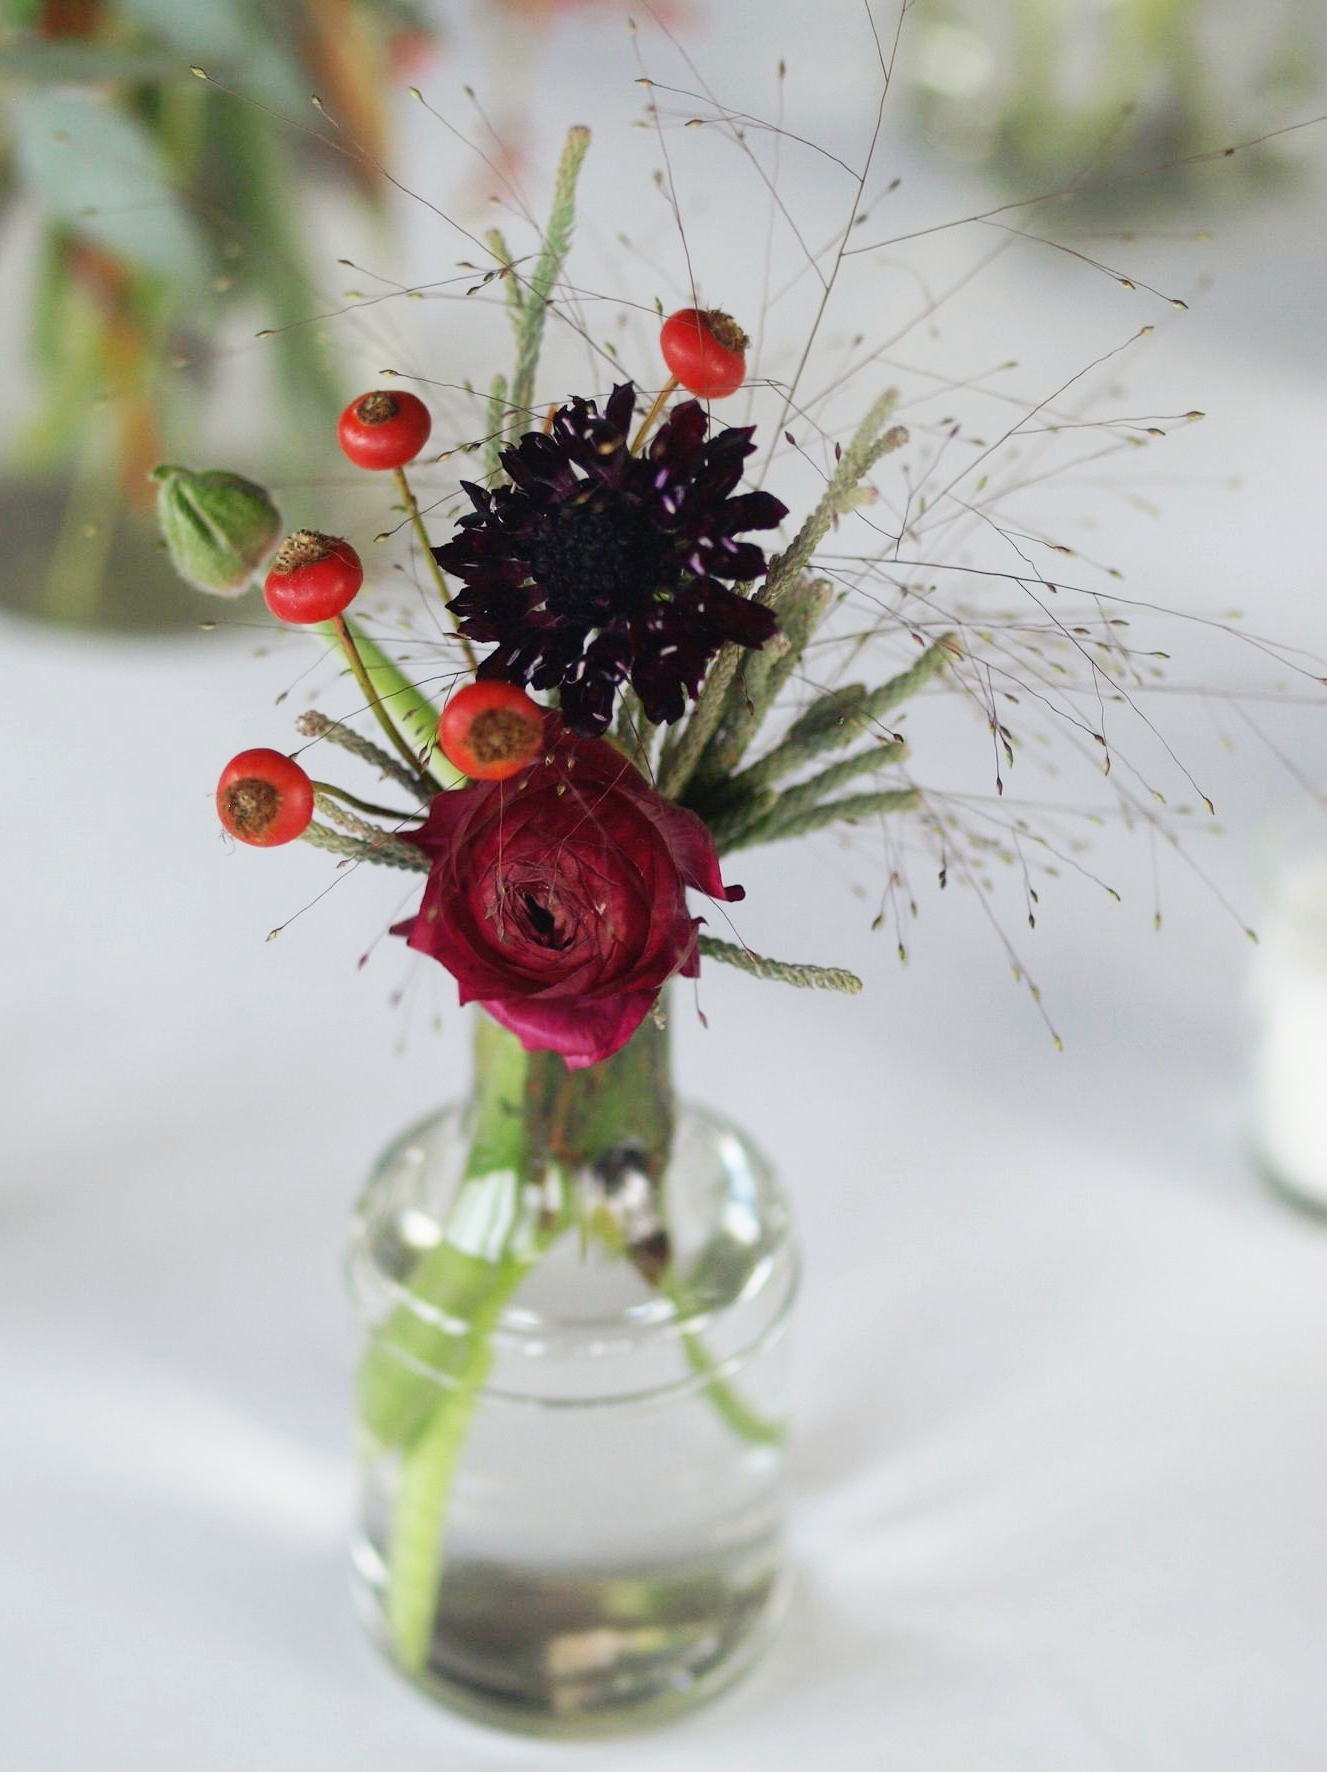 Oreonta house woodstock wedding bud vase with burgundy ranunculous, , grey brunia, red berries and red rosehips and wildflowers rosehip social rosehip floral wild grass.jpg